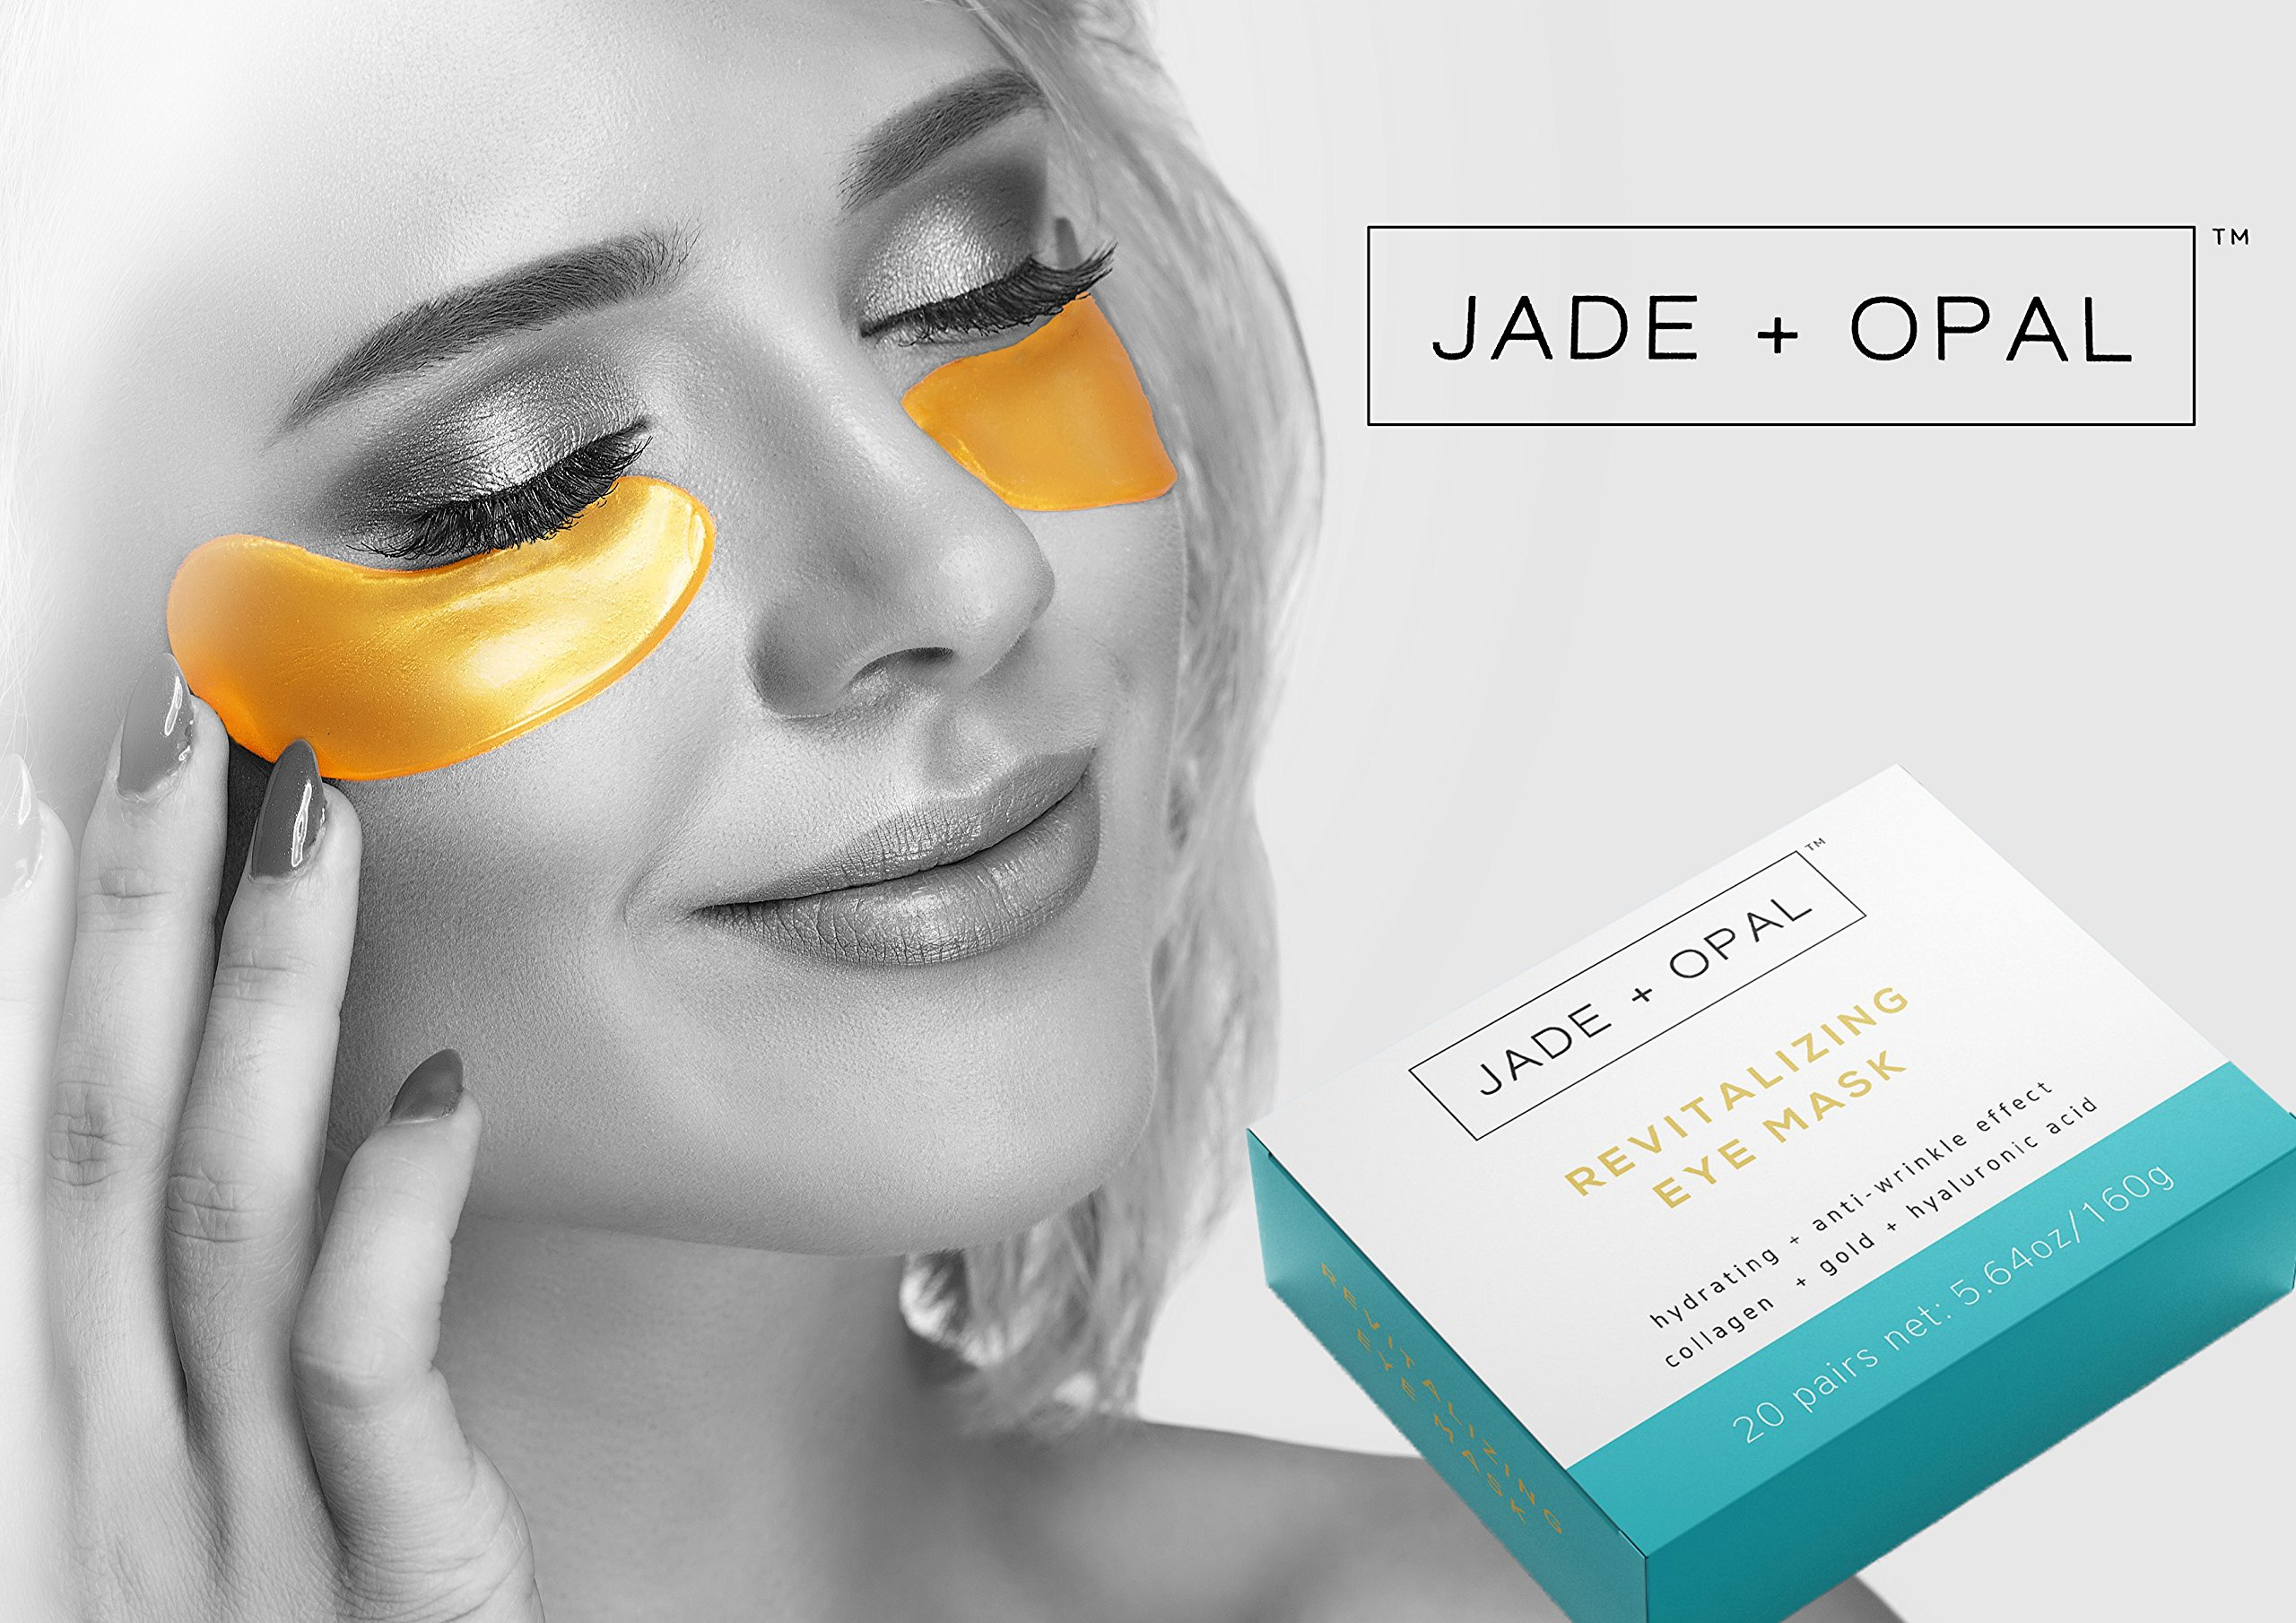 Jade and Opal Gold Collagen Revitalizing Eye Mask, 20 Pairs (Pack of 1) by Jade and Opal (Image #3)